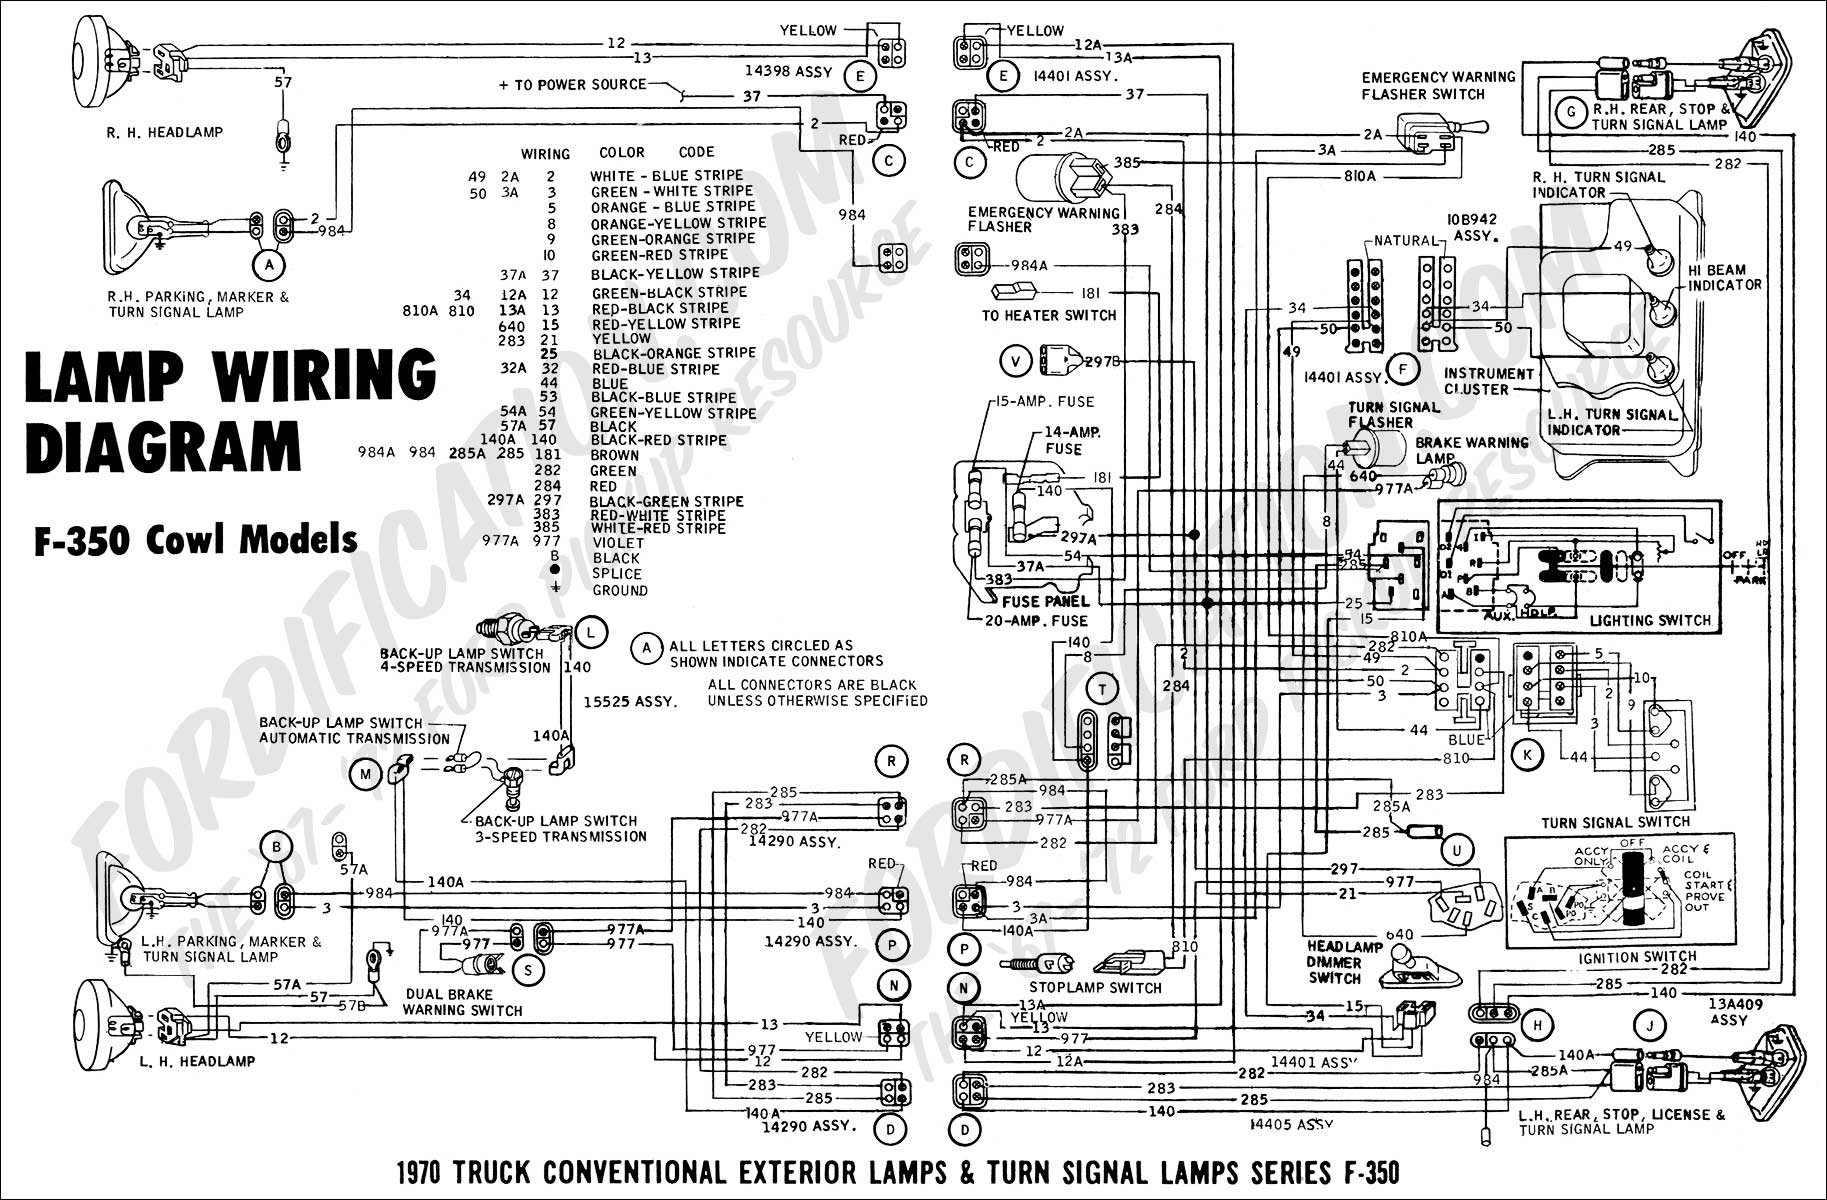 Ford Schematics | Wiring Diagram - Schematic Wiring Diagram